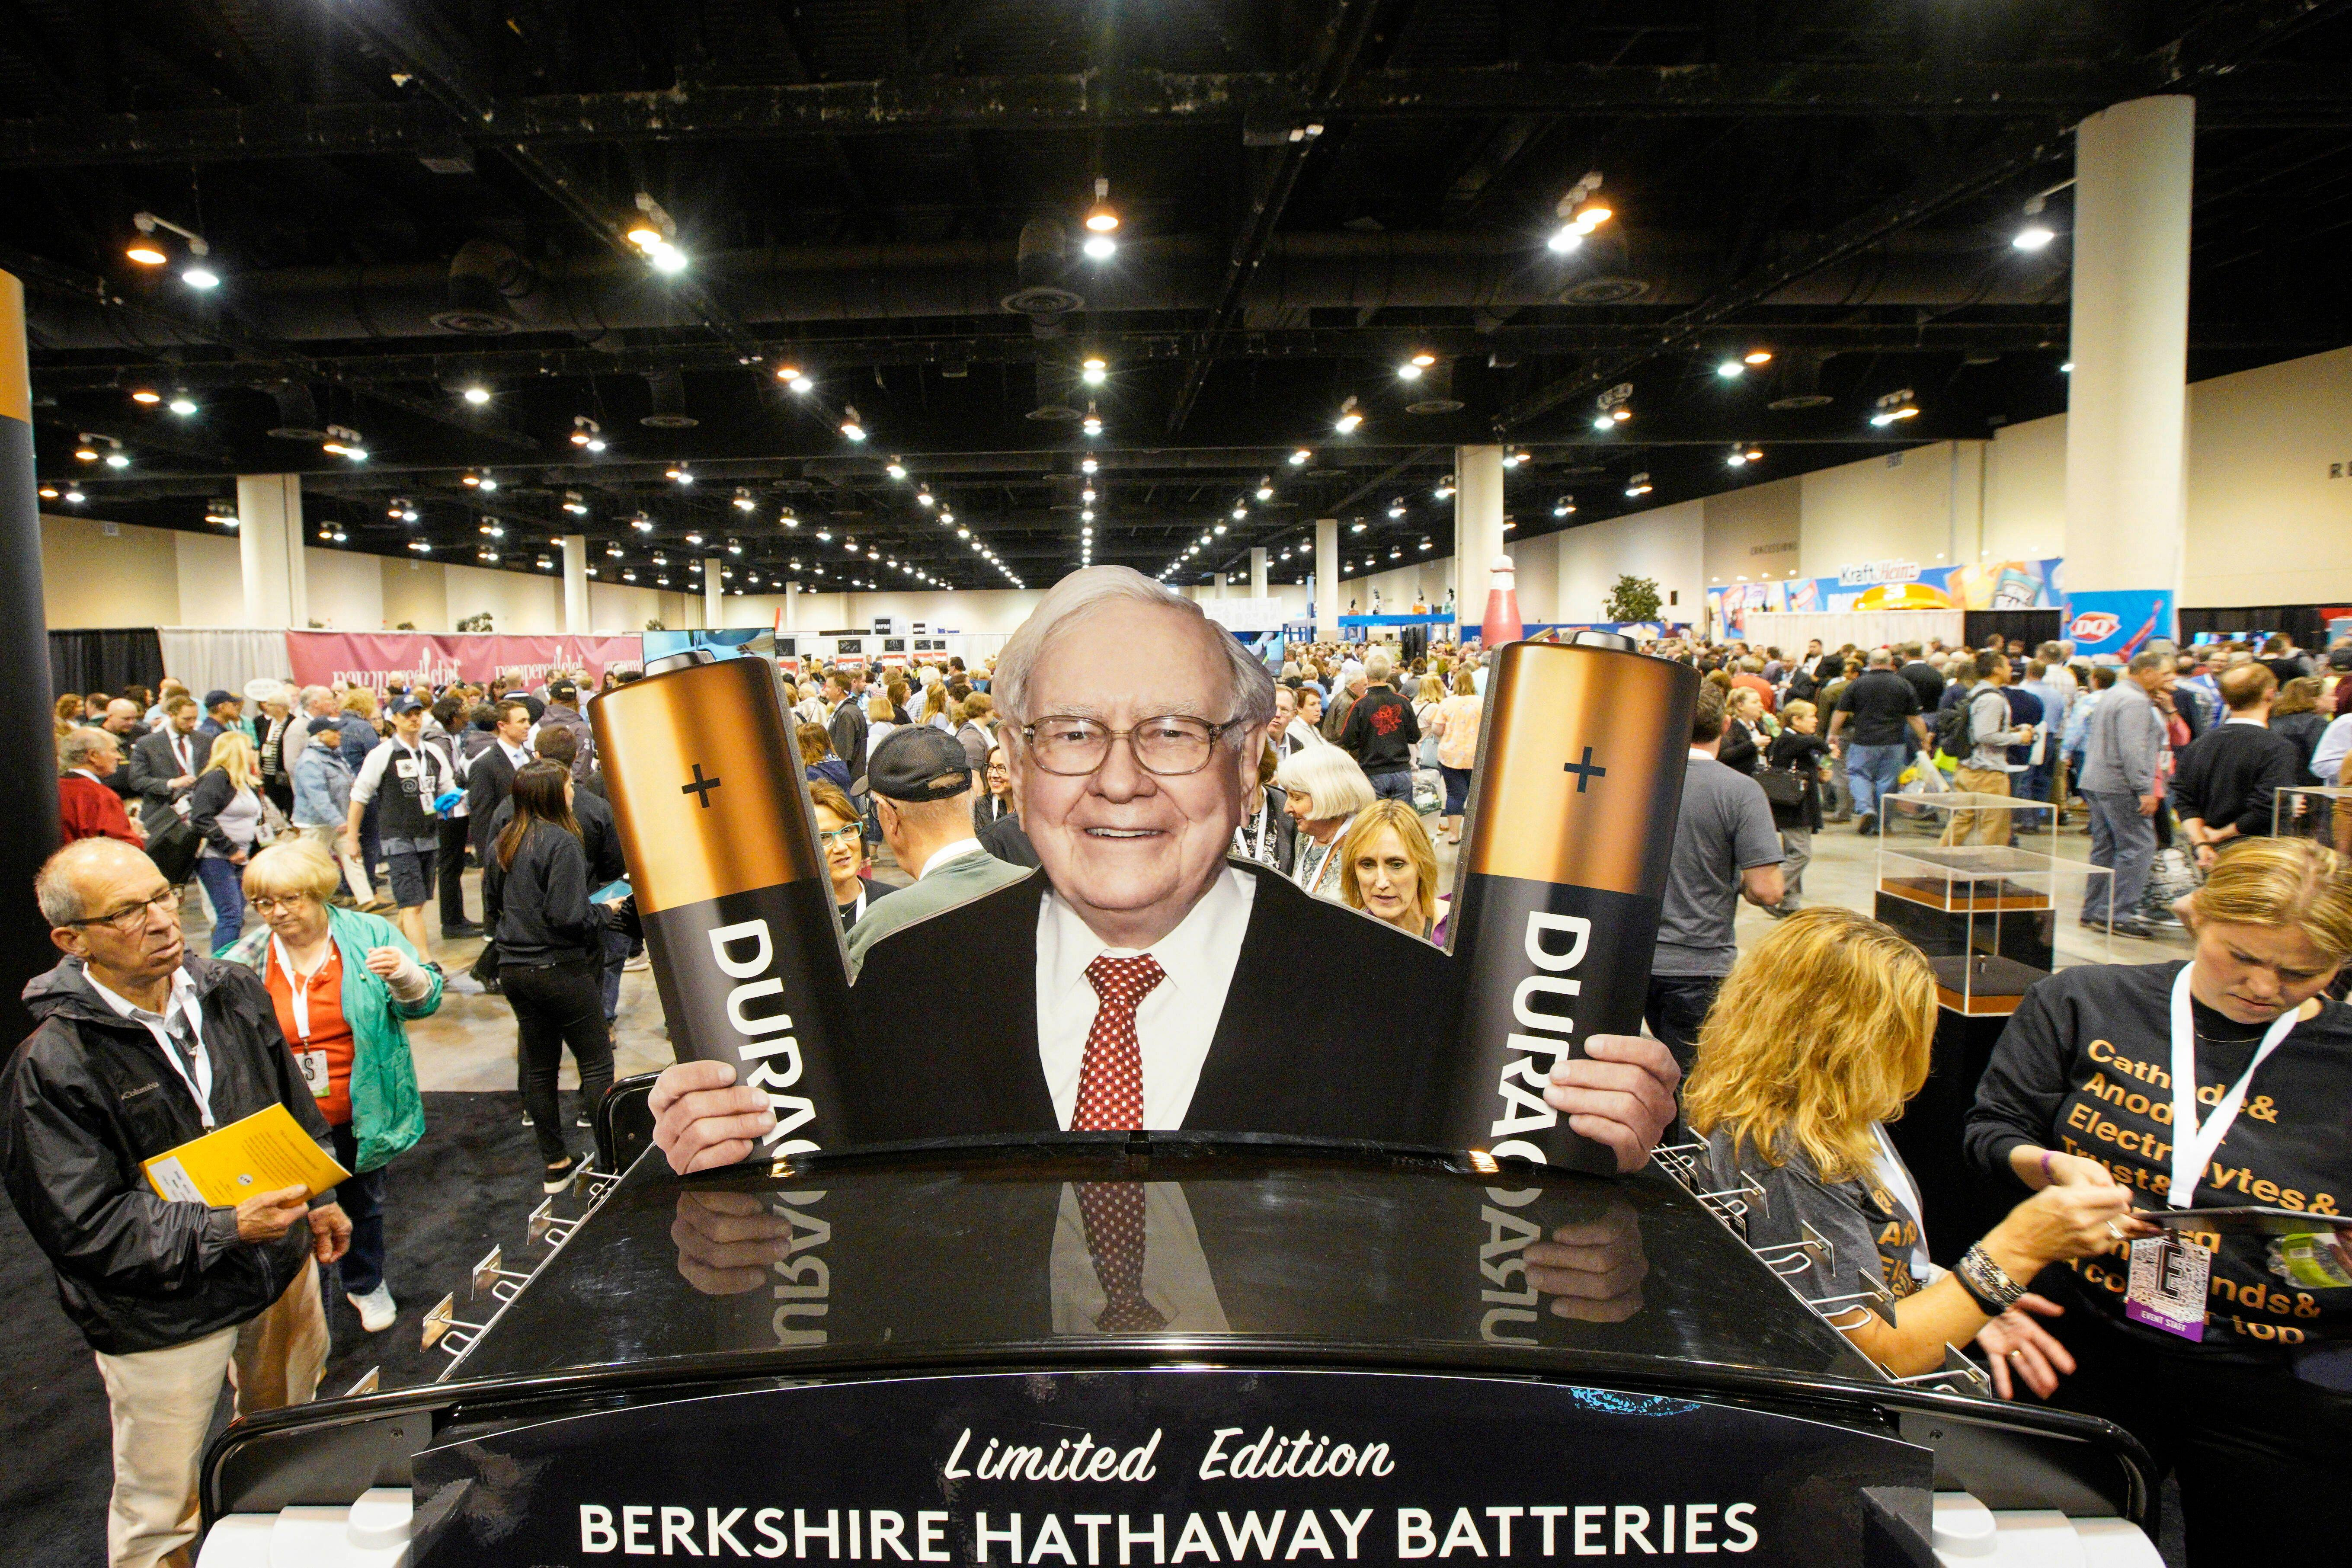 Why Warren Buffett buying Amazon stock means traditional value investing is dead